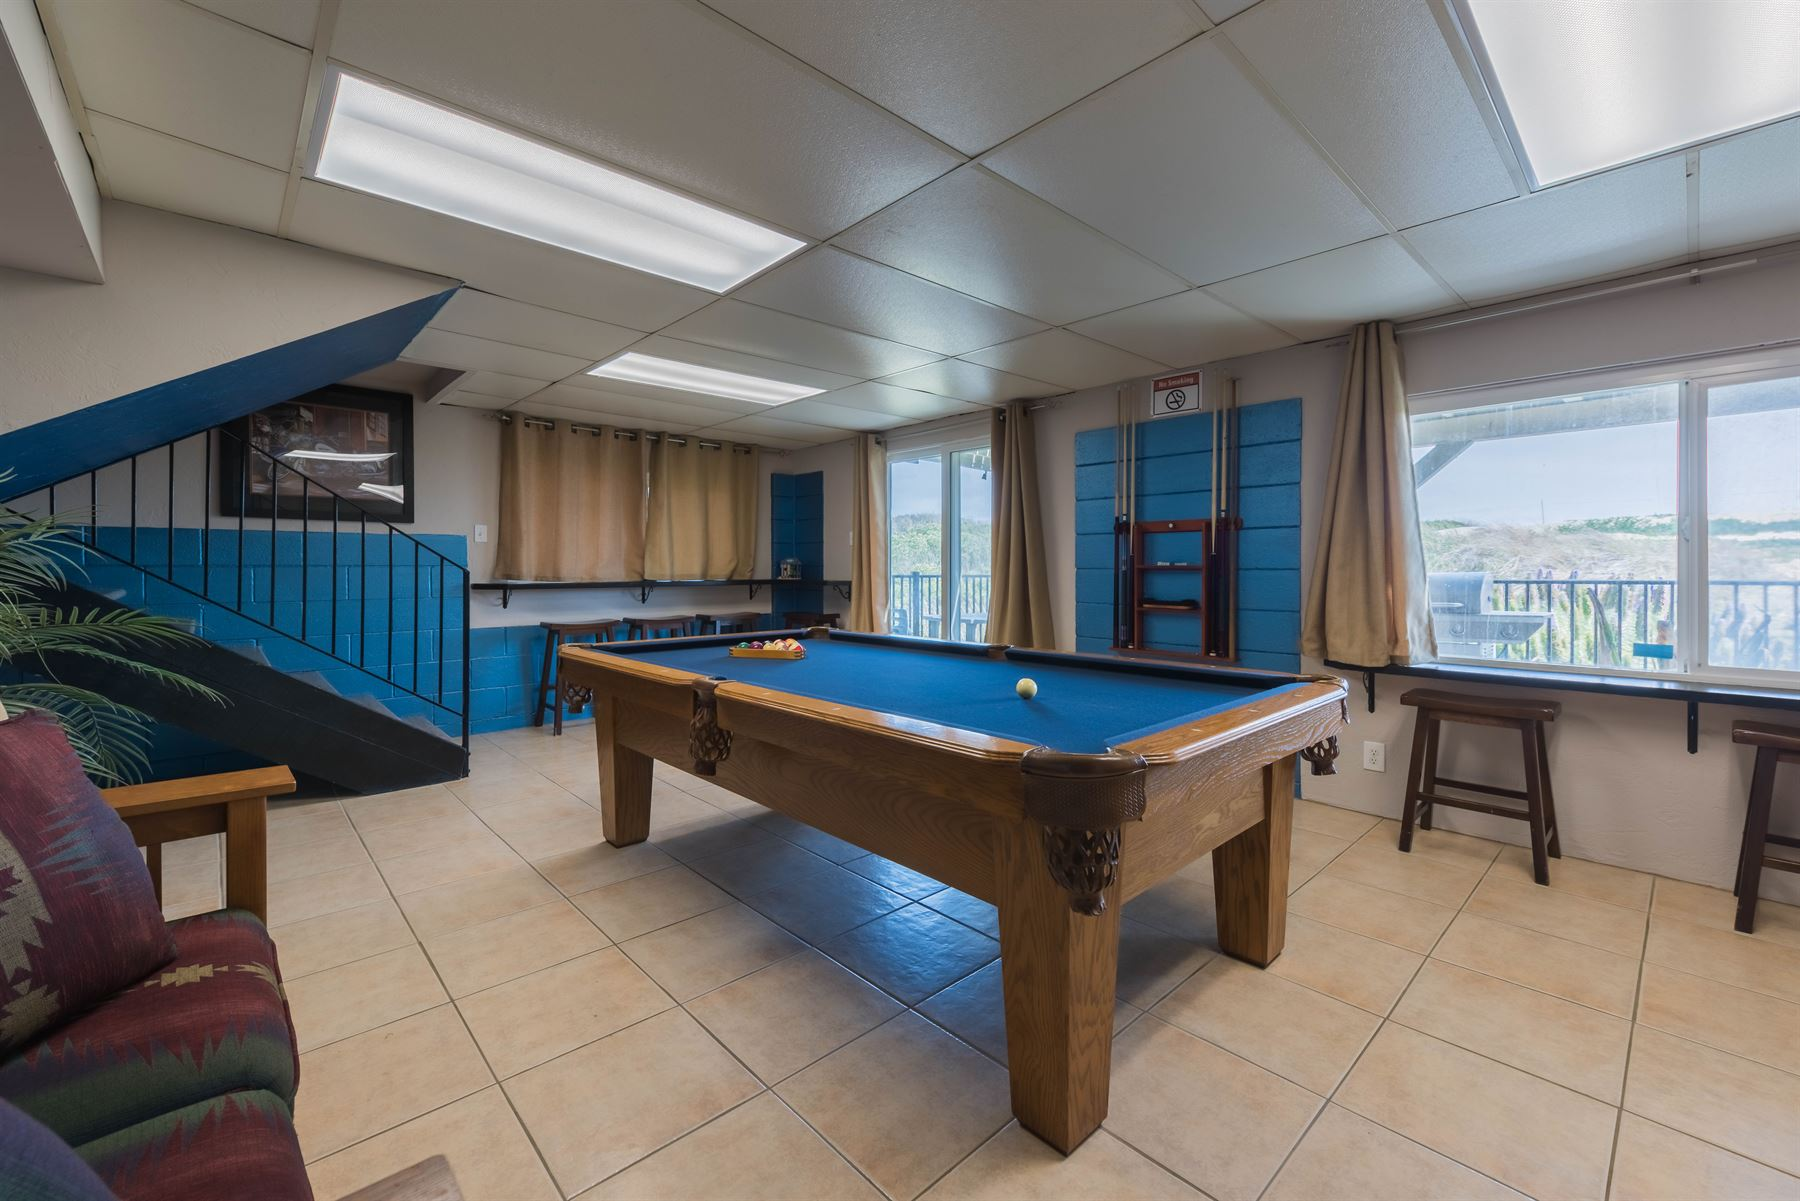 Oceanview Hideaway - Interior - Game room with view of stairs going back up to main living space and view through windows and sliding glass doors to the porch with a grill and seating